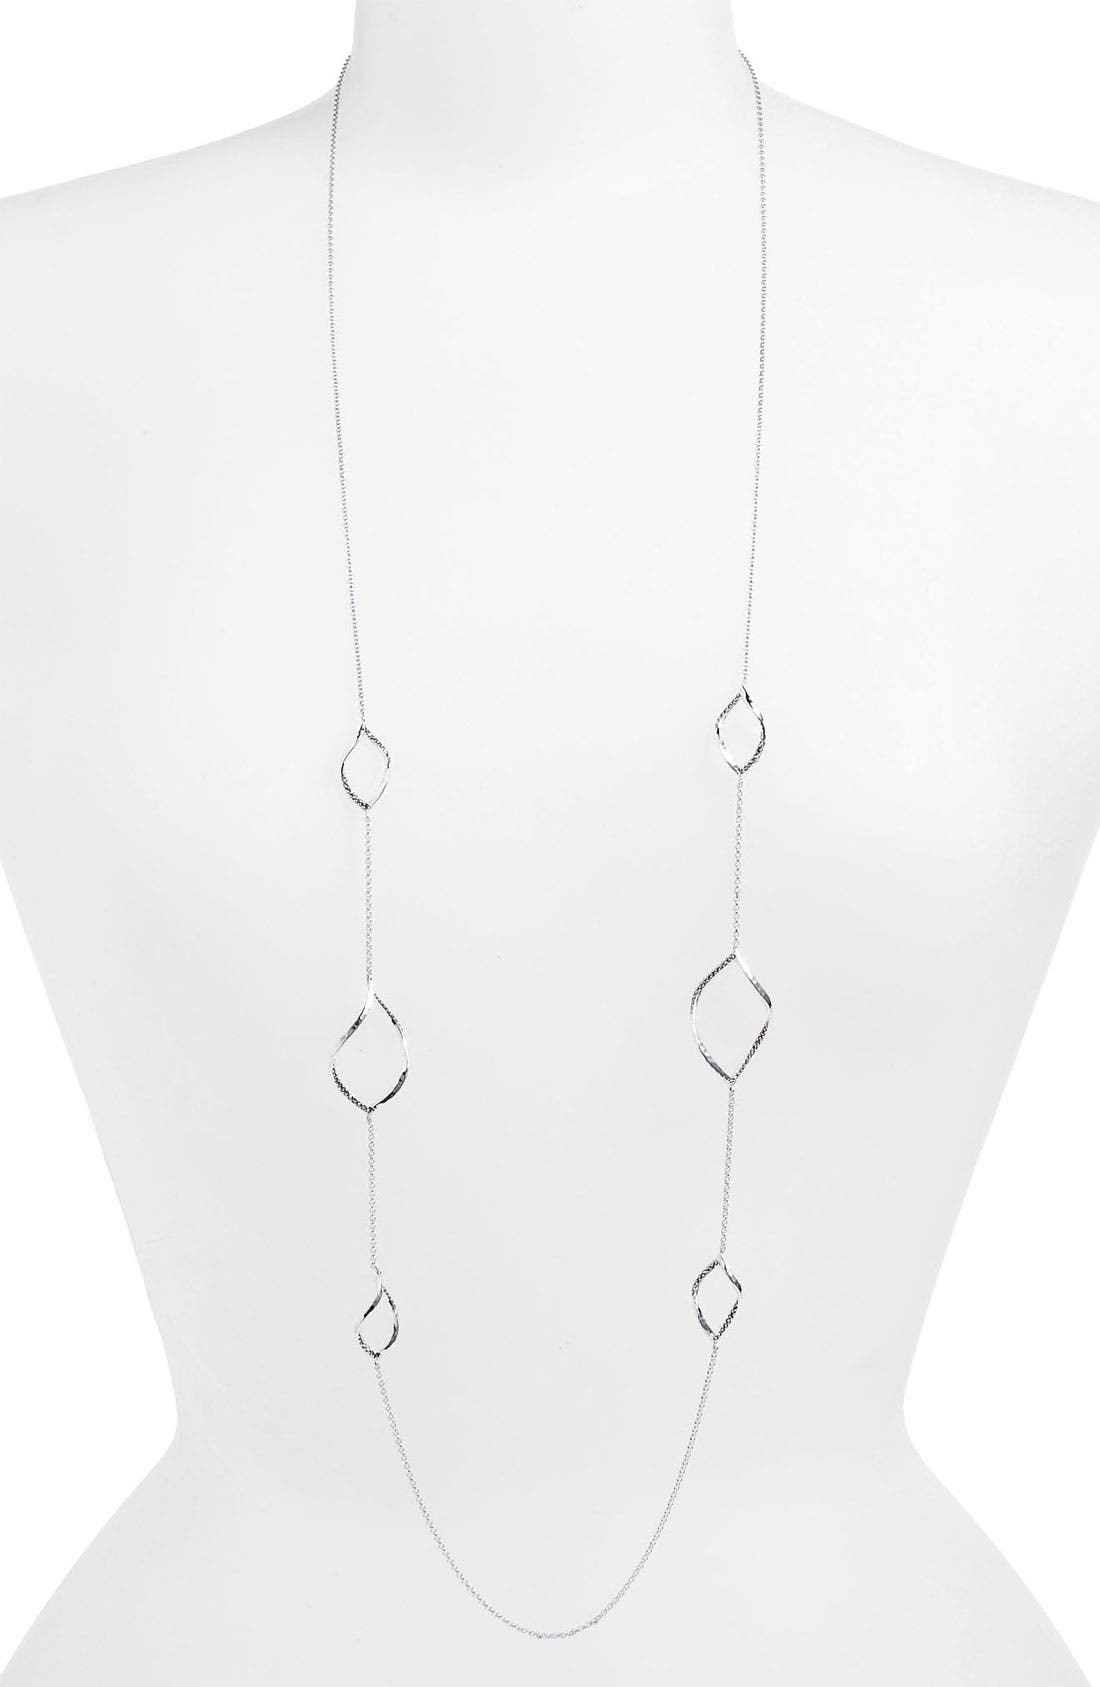 Alternate Image 1 Selected - Judith Jack 'Fluidity' Long Station Necklace